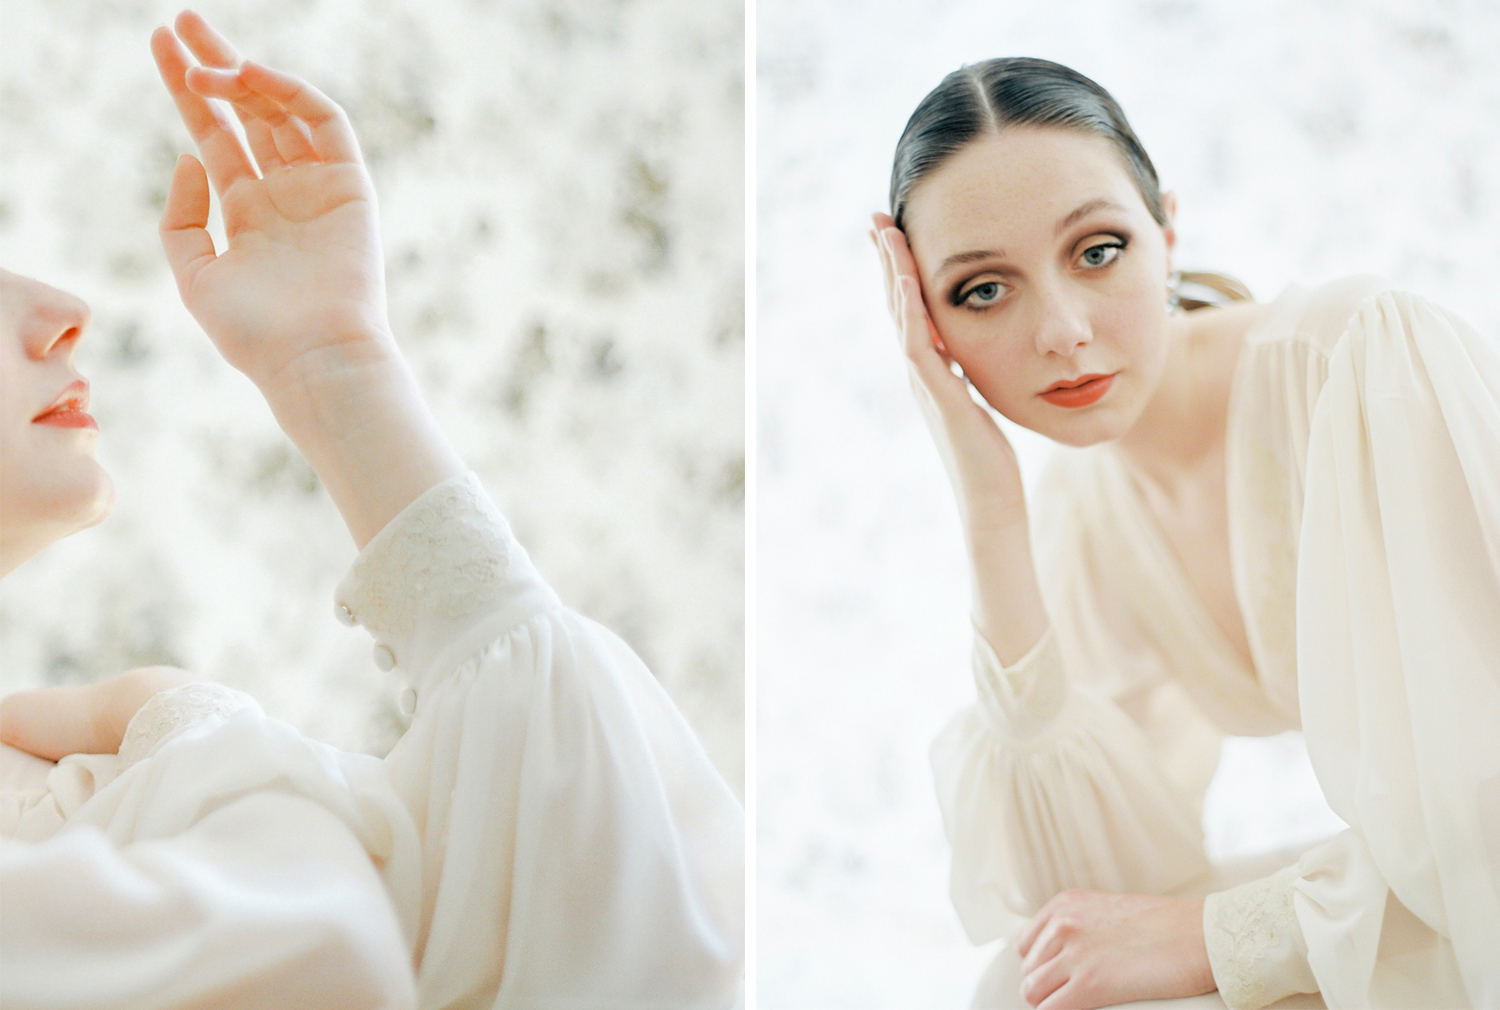 Inspirational ideas for bridal portraits